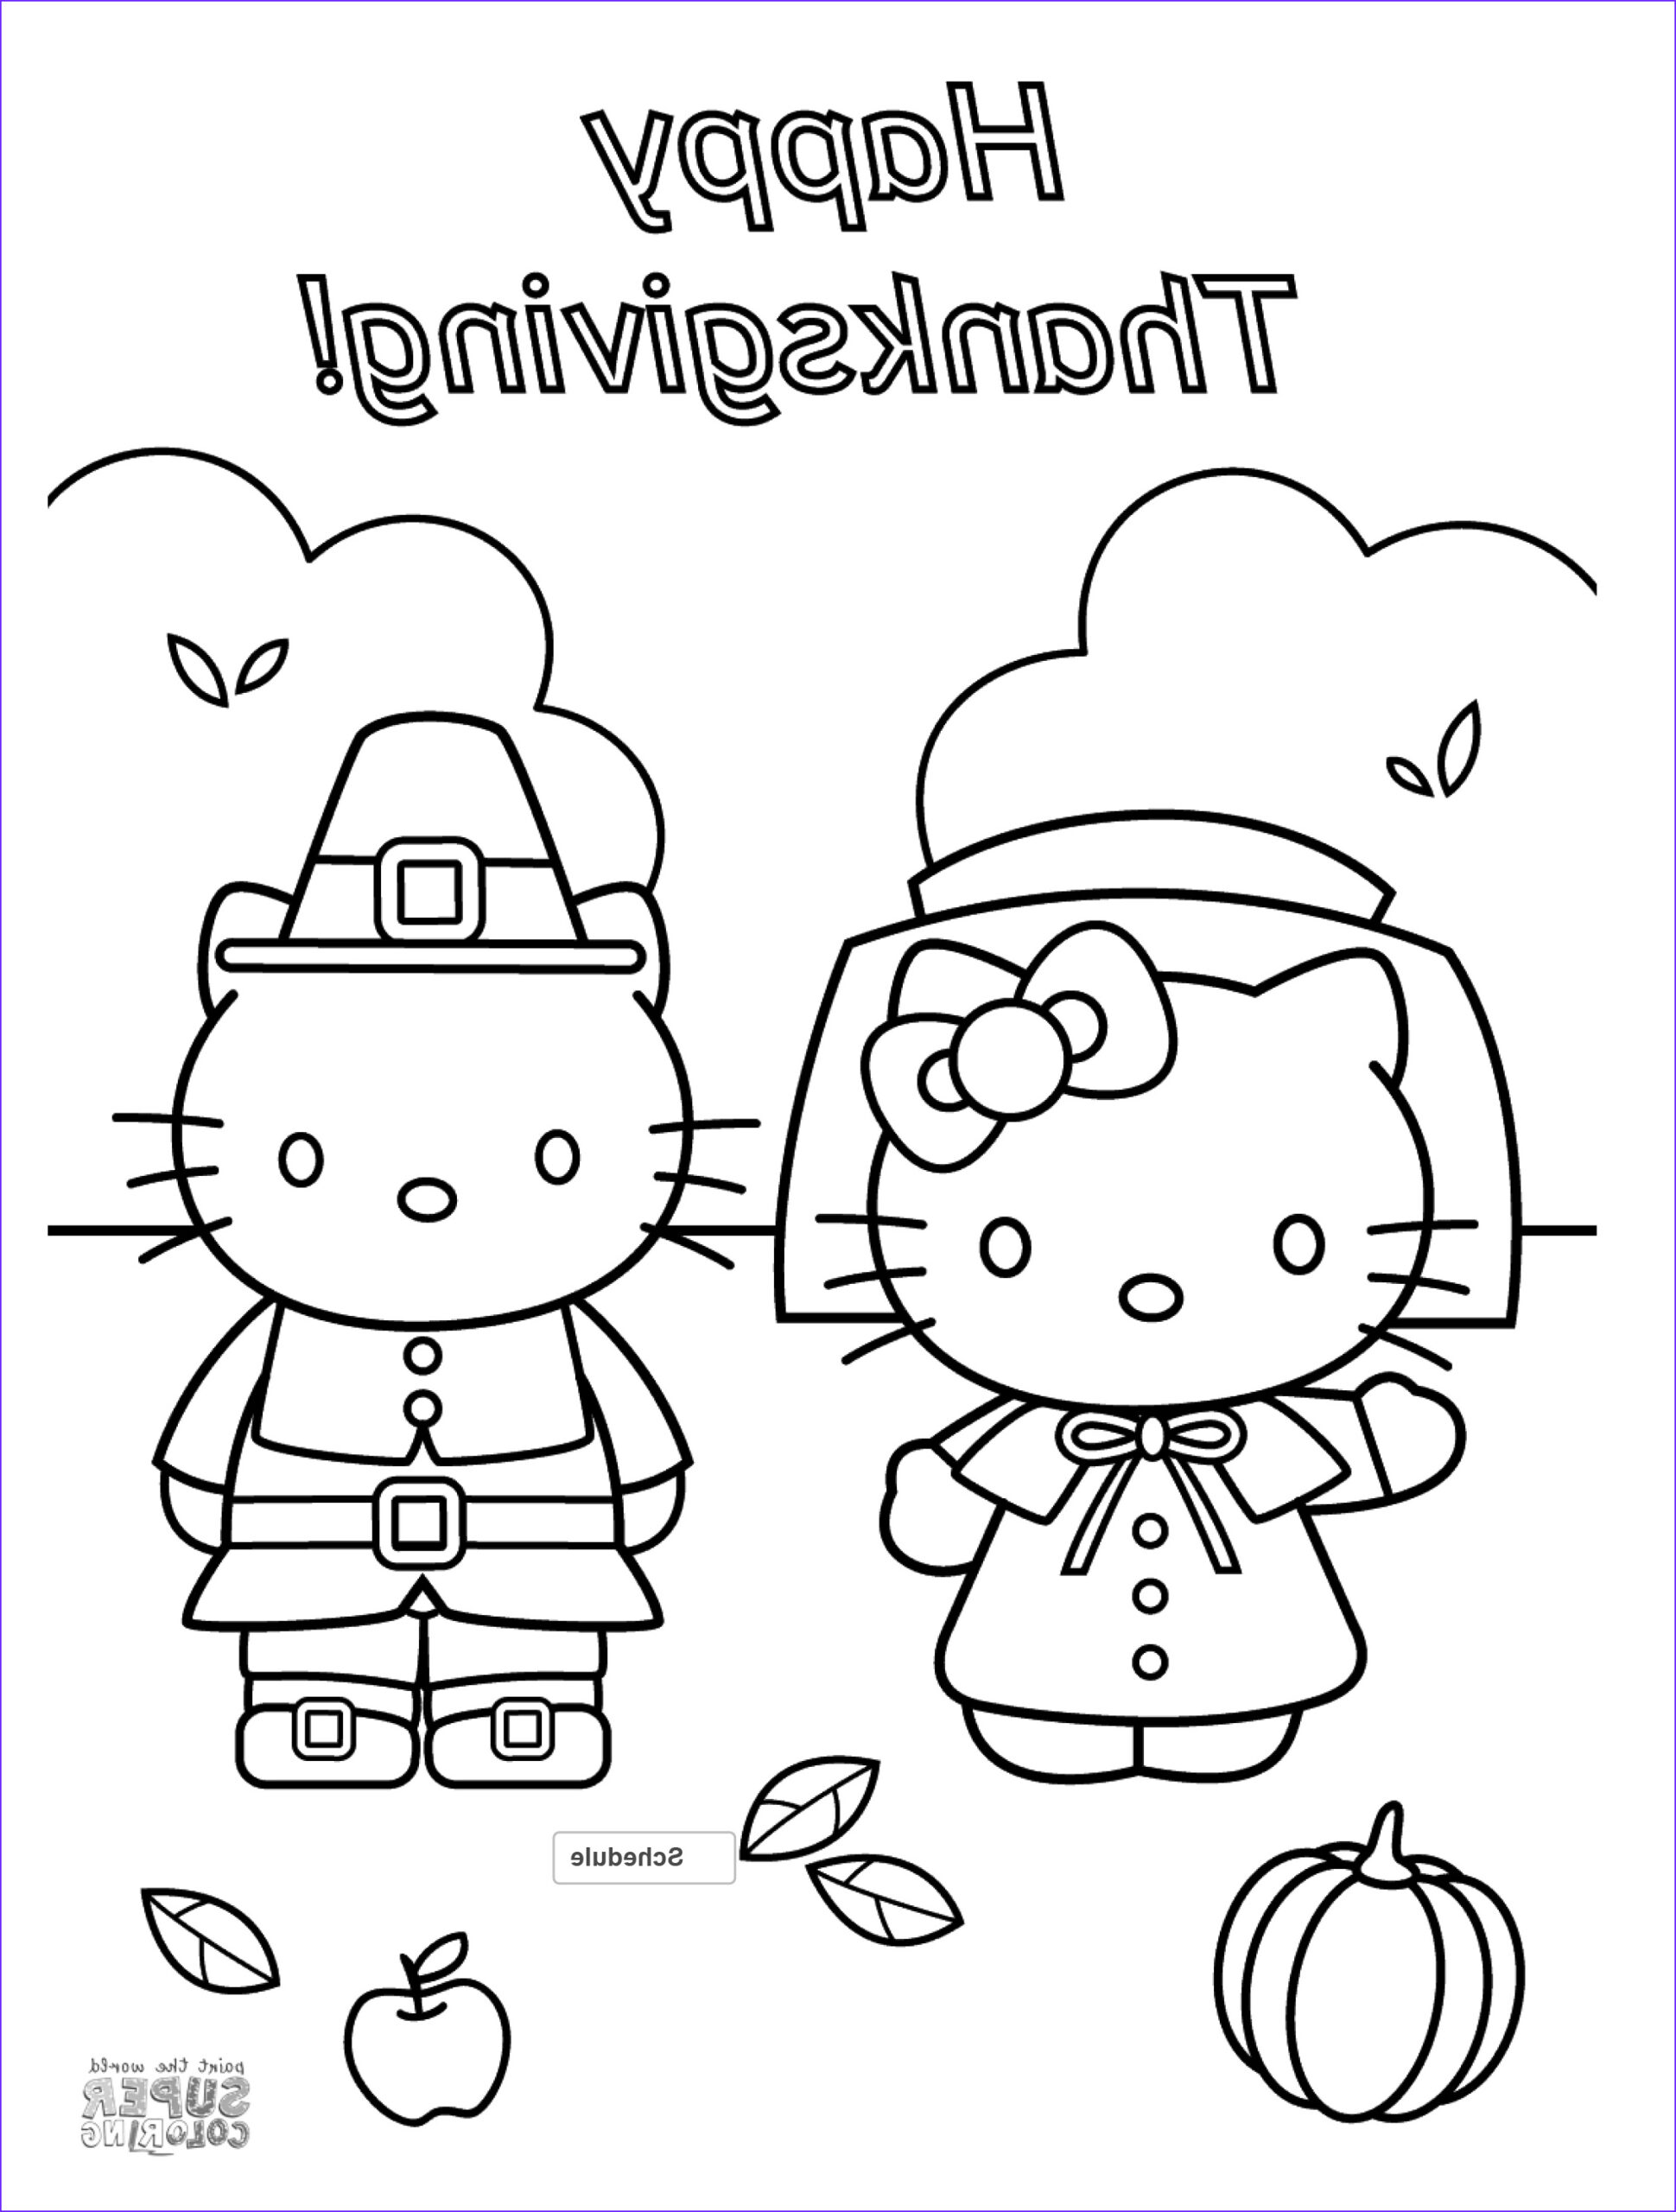 Thanksgiving Coloring Pages New Stock Free Thanksgiving Coloring Pages for Adults & Kids